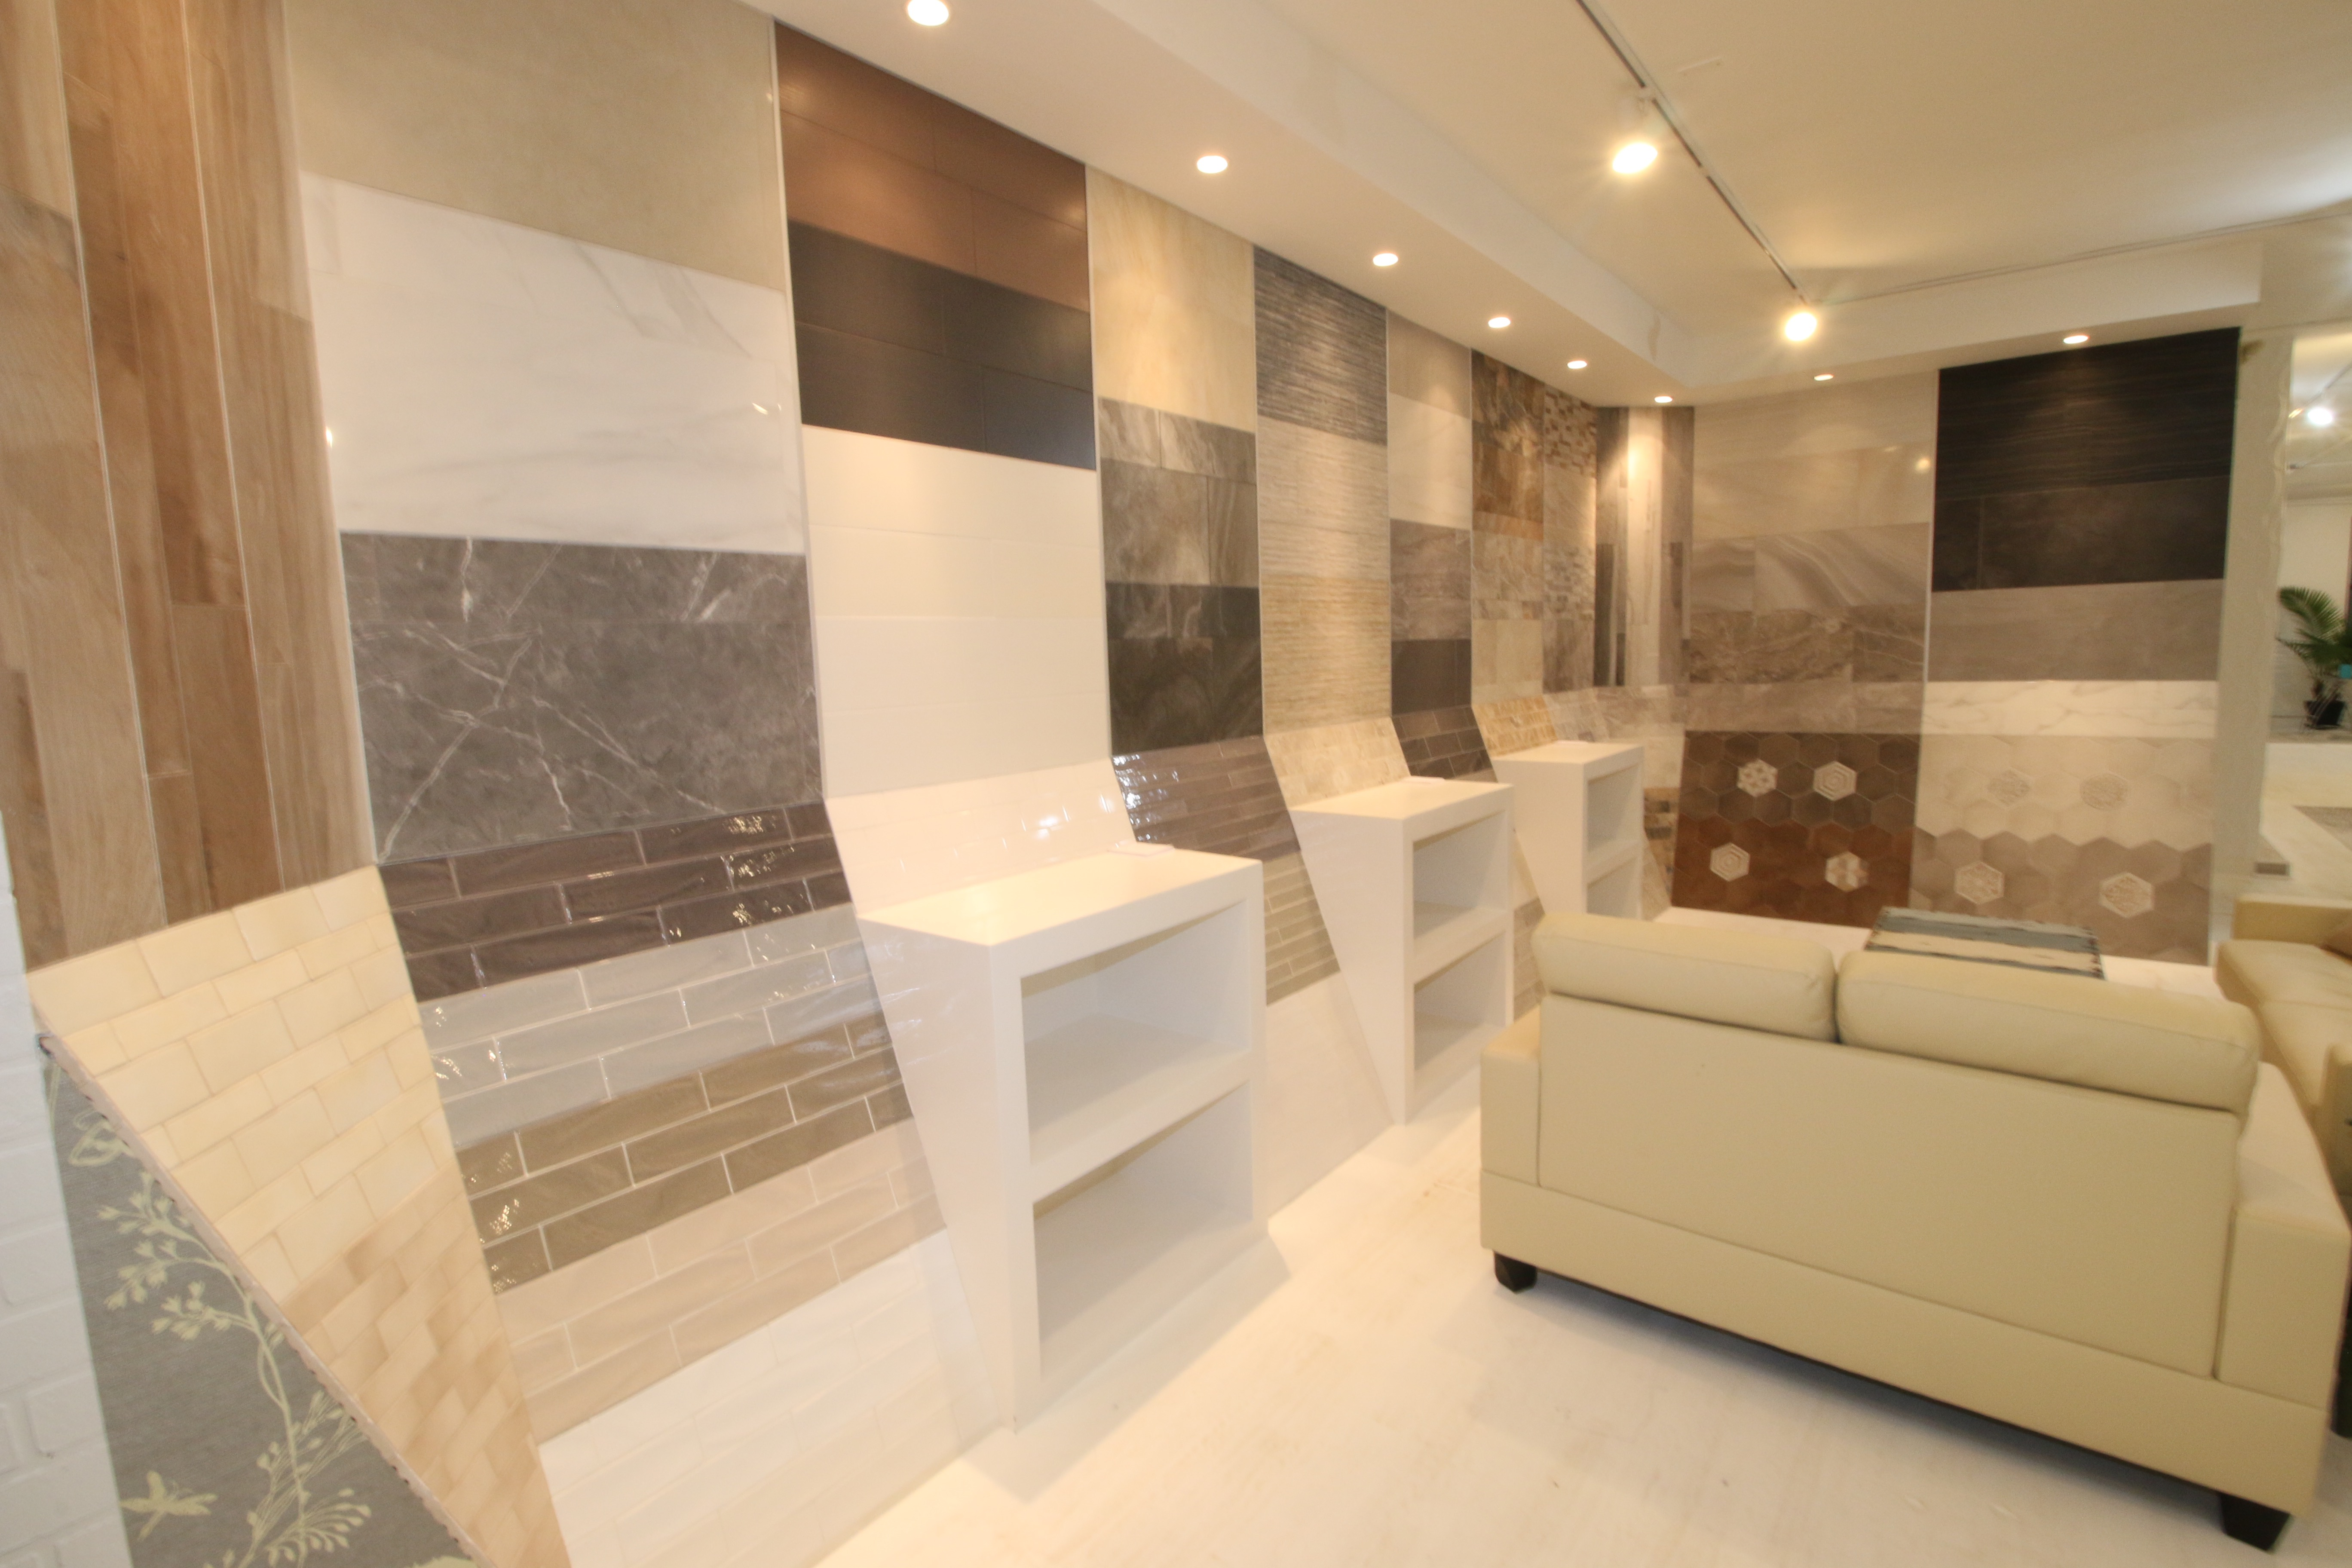 Another Look at Our Showroom Display